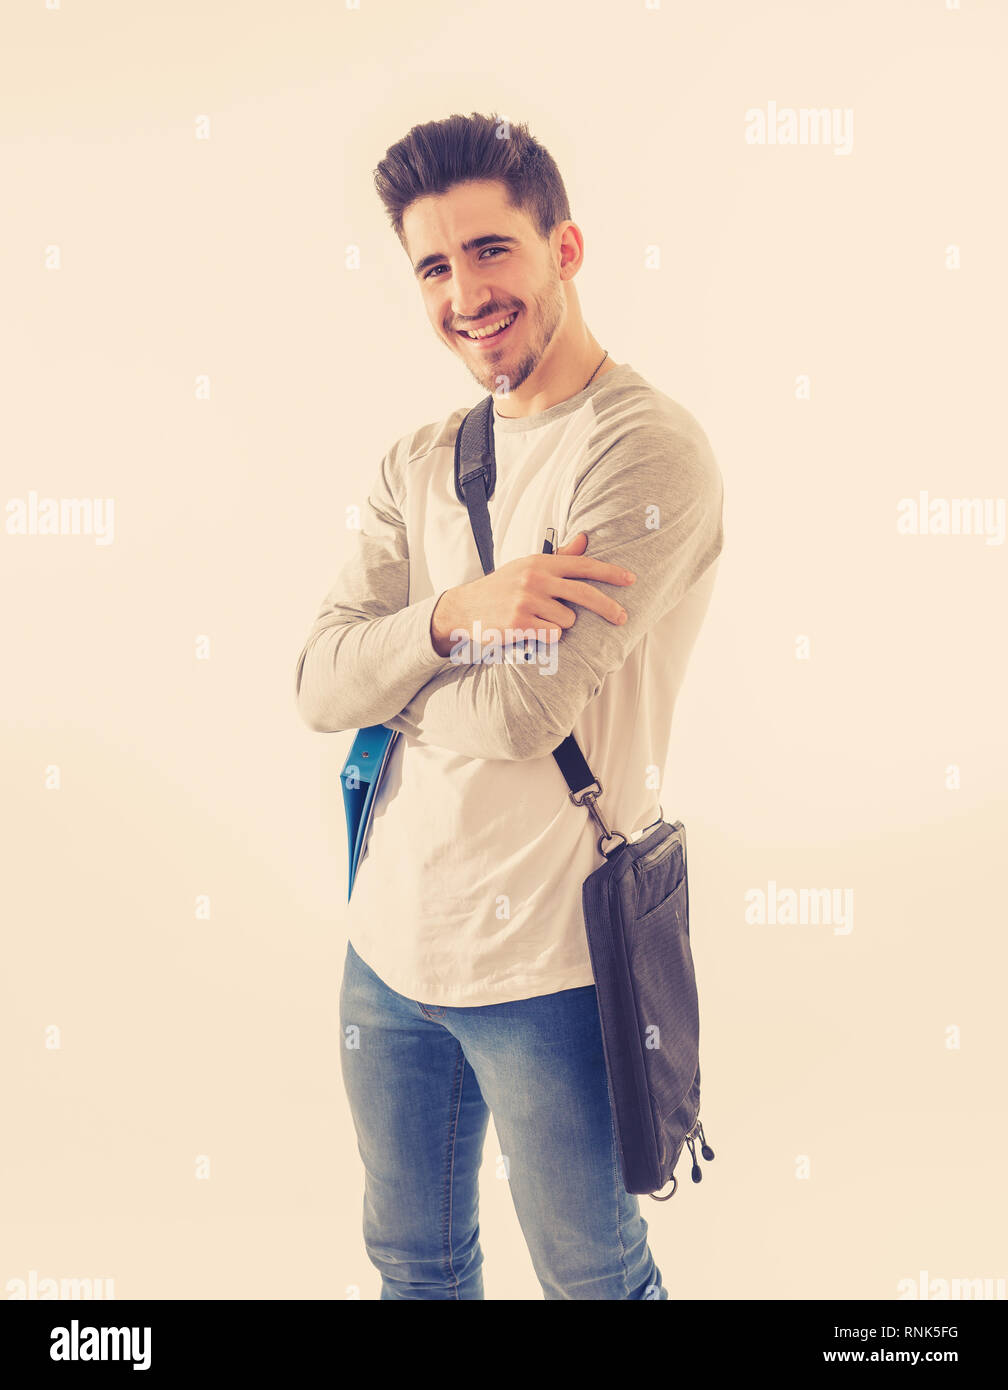 Portrait of Handsome college student man with backpack and notepad folder smiling against white background on his way to university lecture. in People - Stock Image